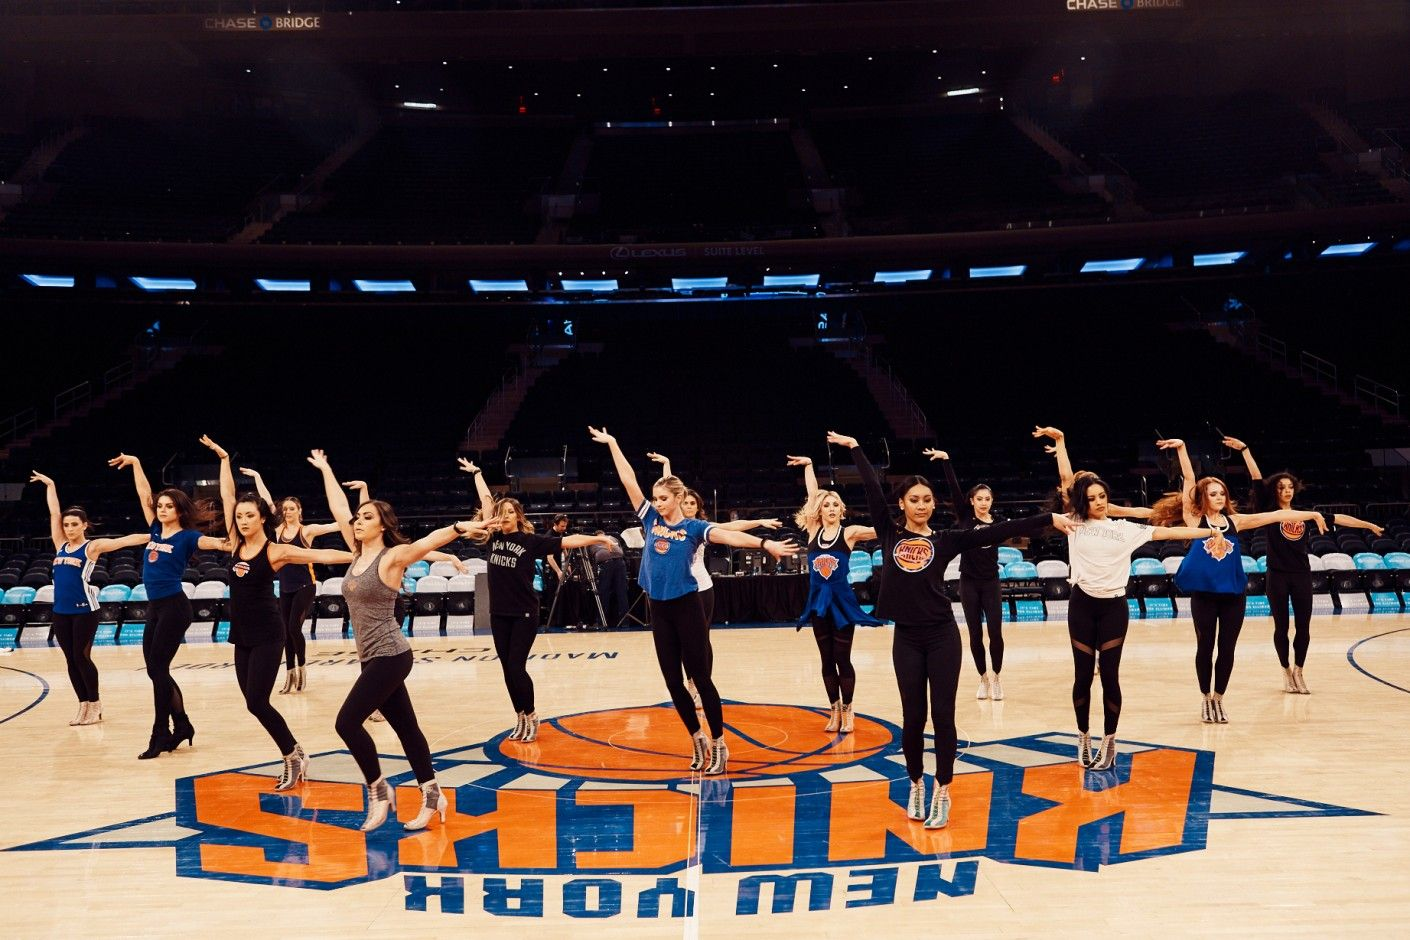 What It's Like to Be On the NBA's Most Iconic Dance Team